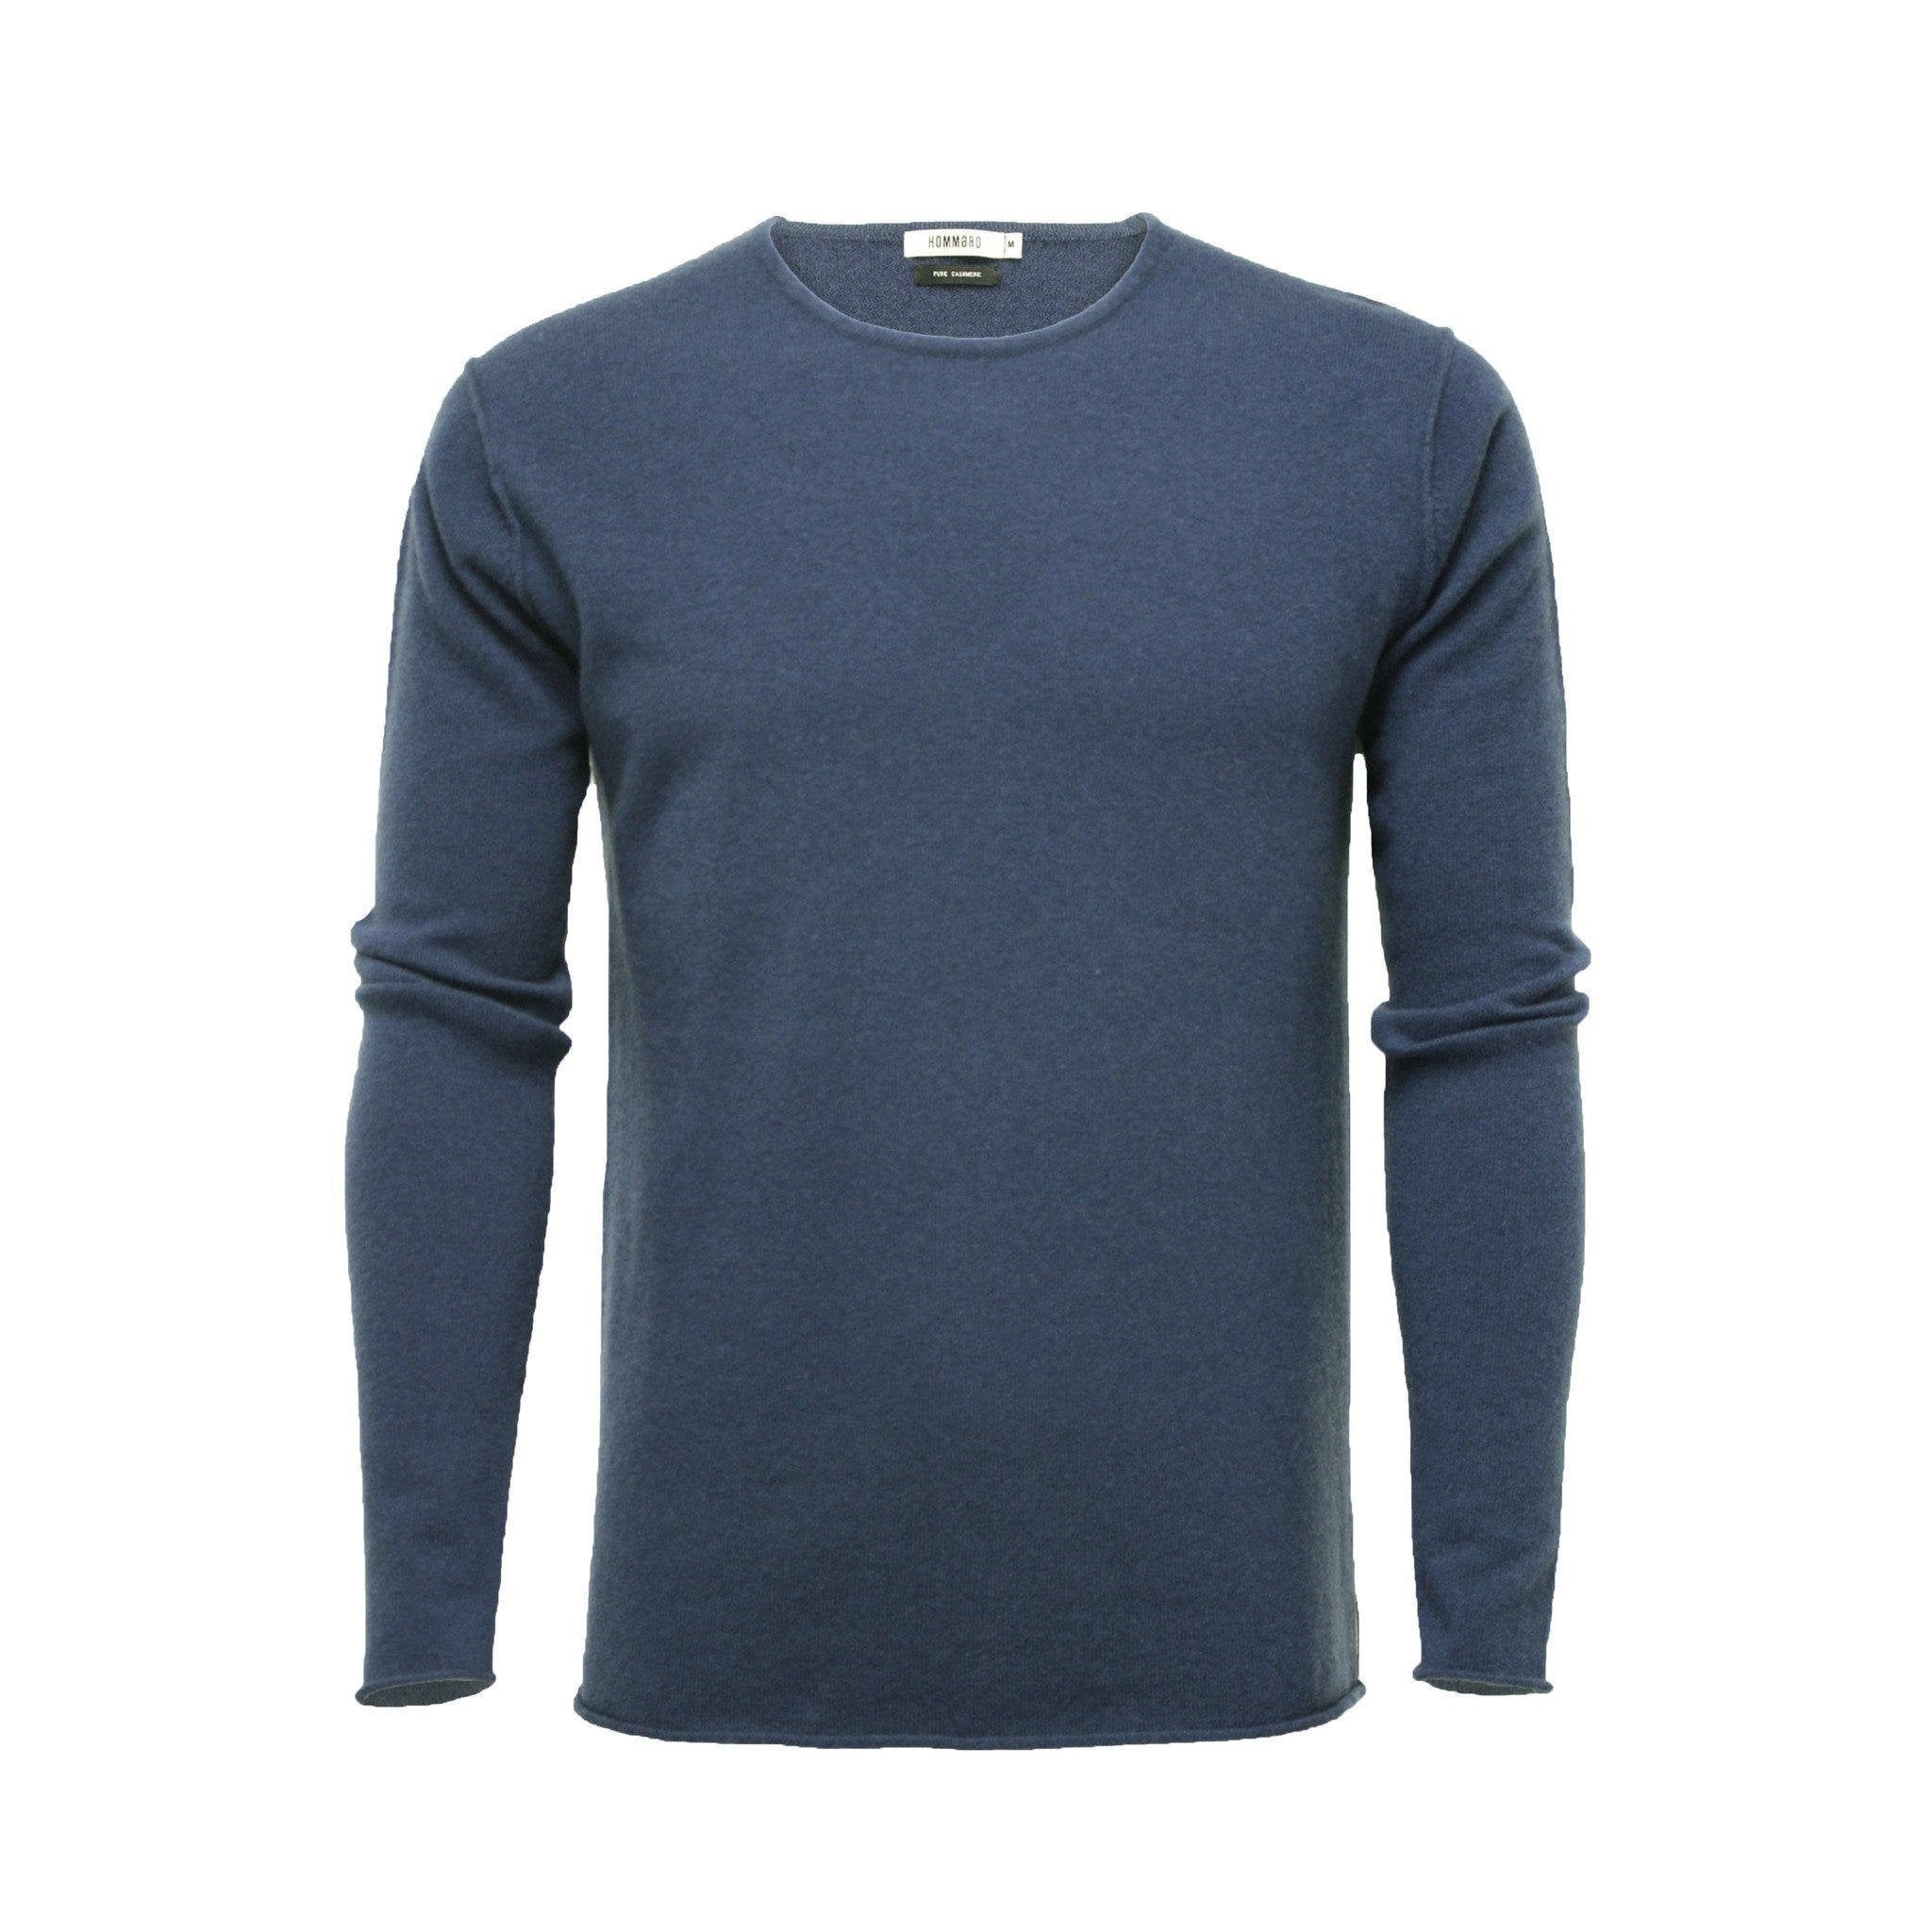 Men´s Cashmere Crew Neck Sweater Ripley - Hommard